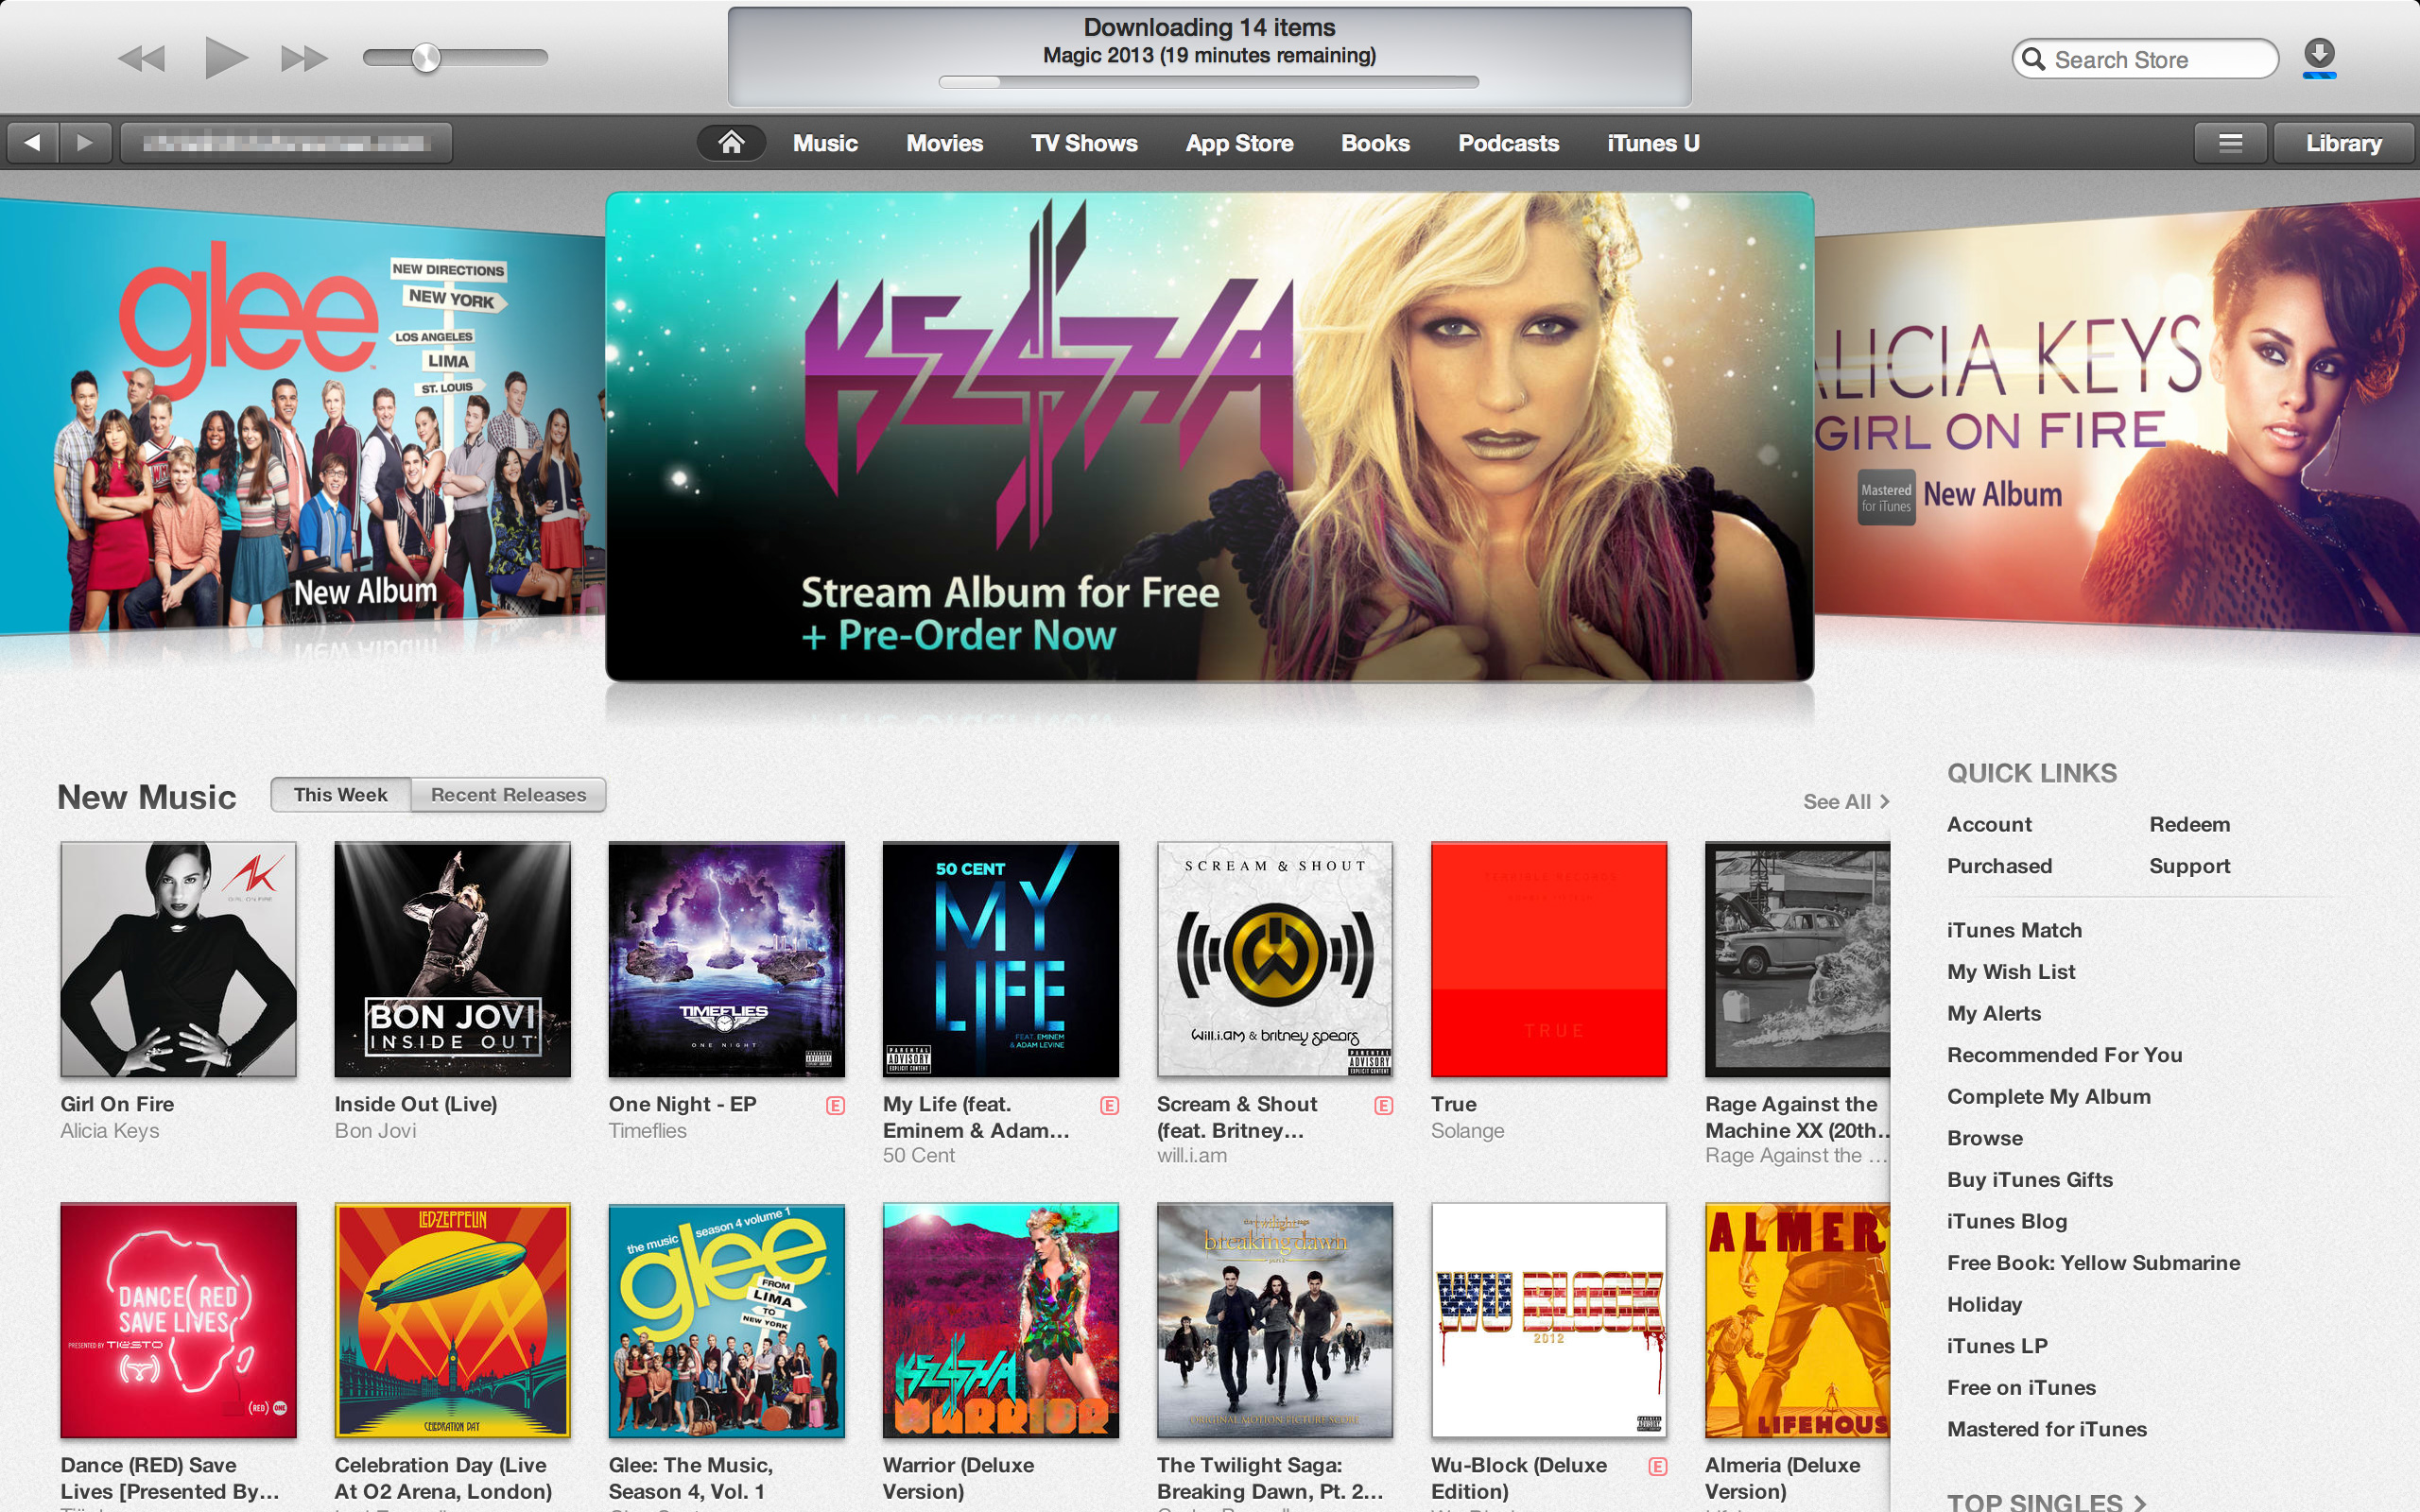 The iTunes Store now mimics the layout seen in iOS 6, for better or worse.